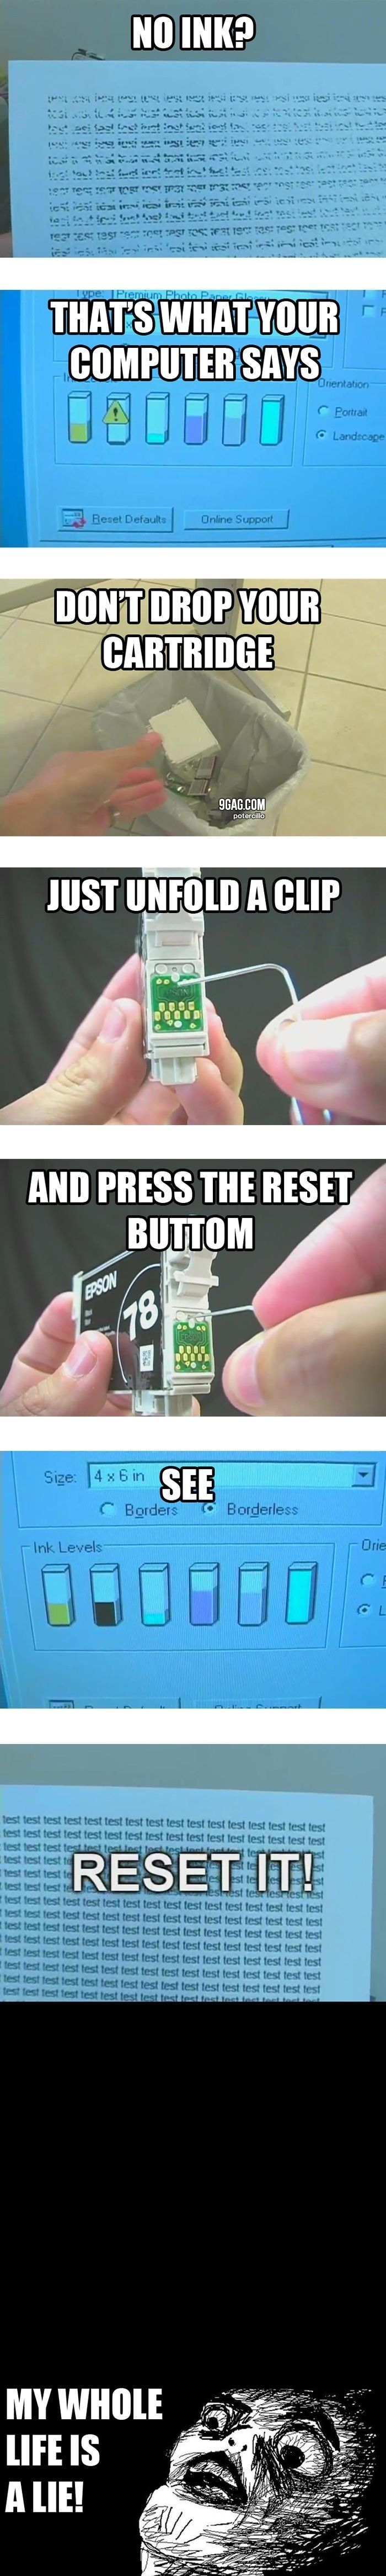 how to find out why computer reset